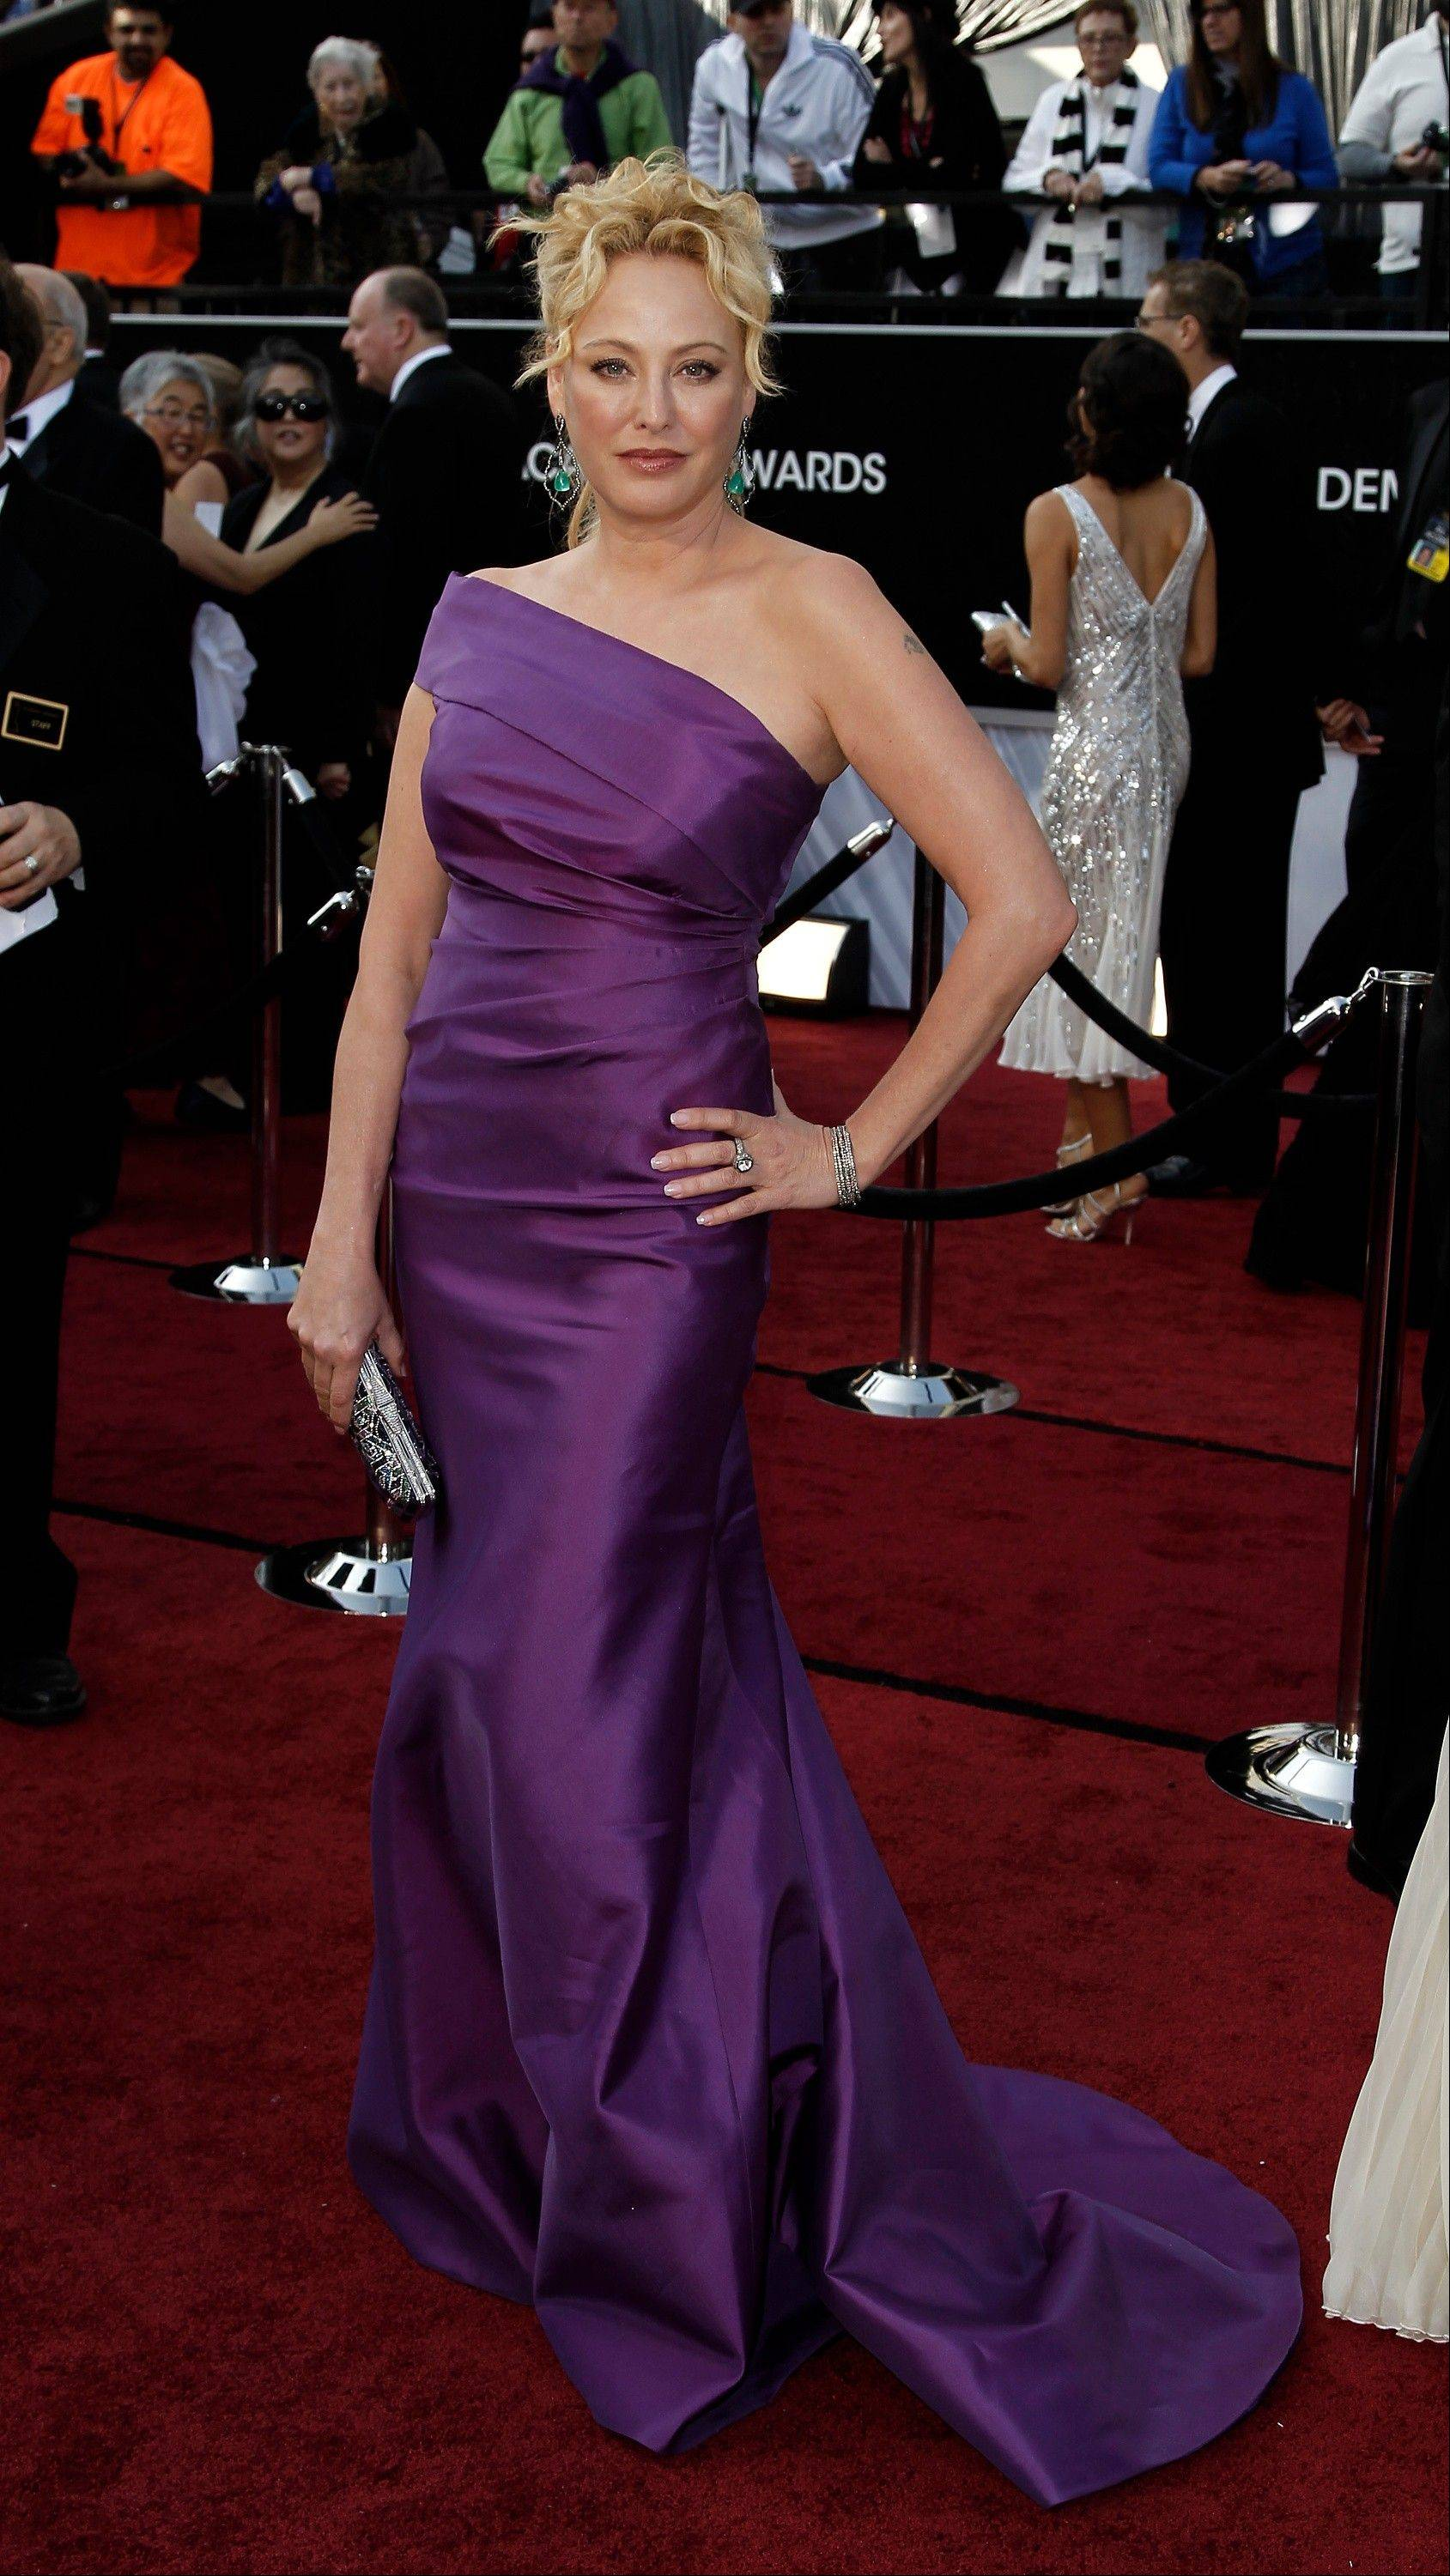 Virginia Madsen arrives before the 84th Academy Awards on Sunday.